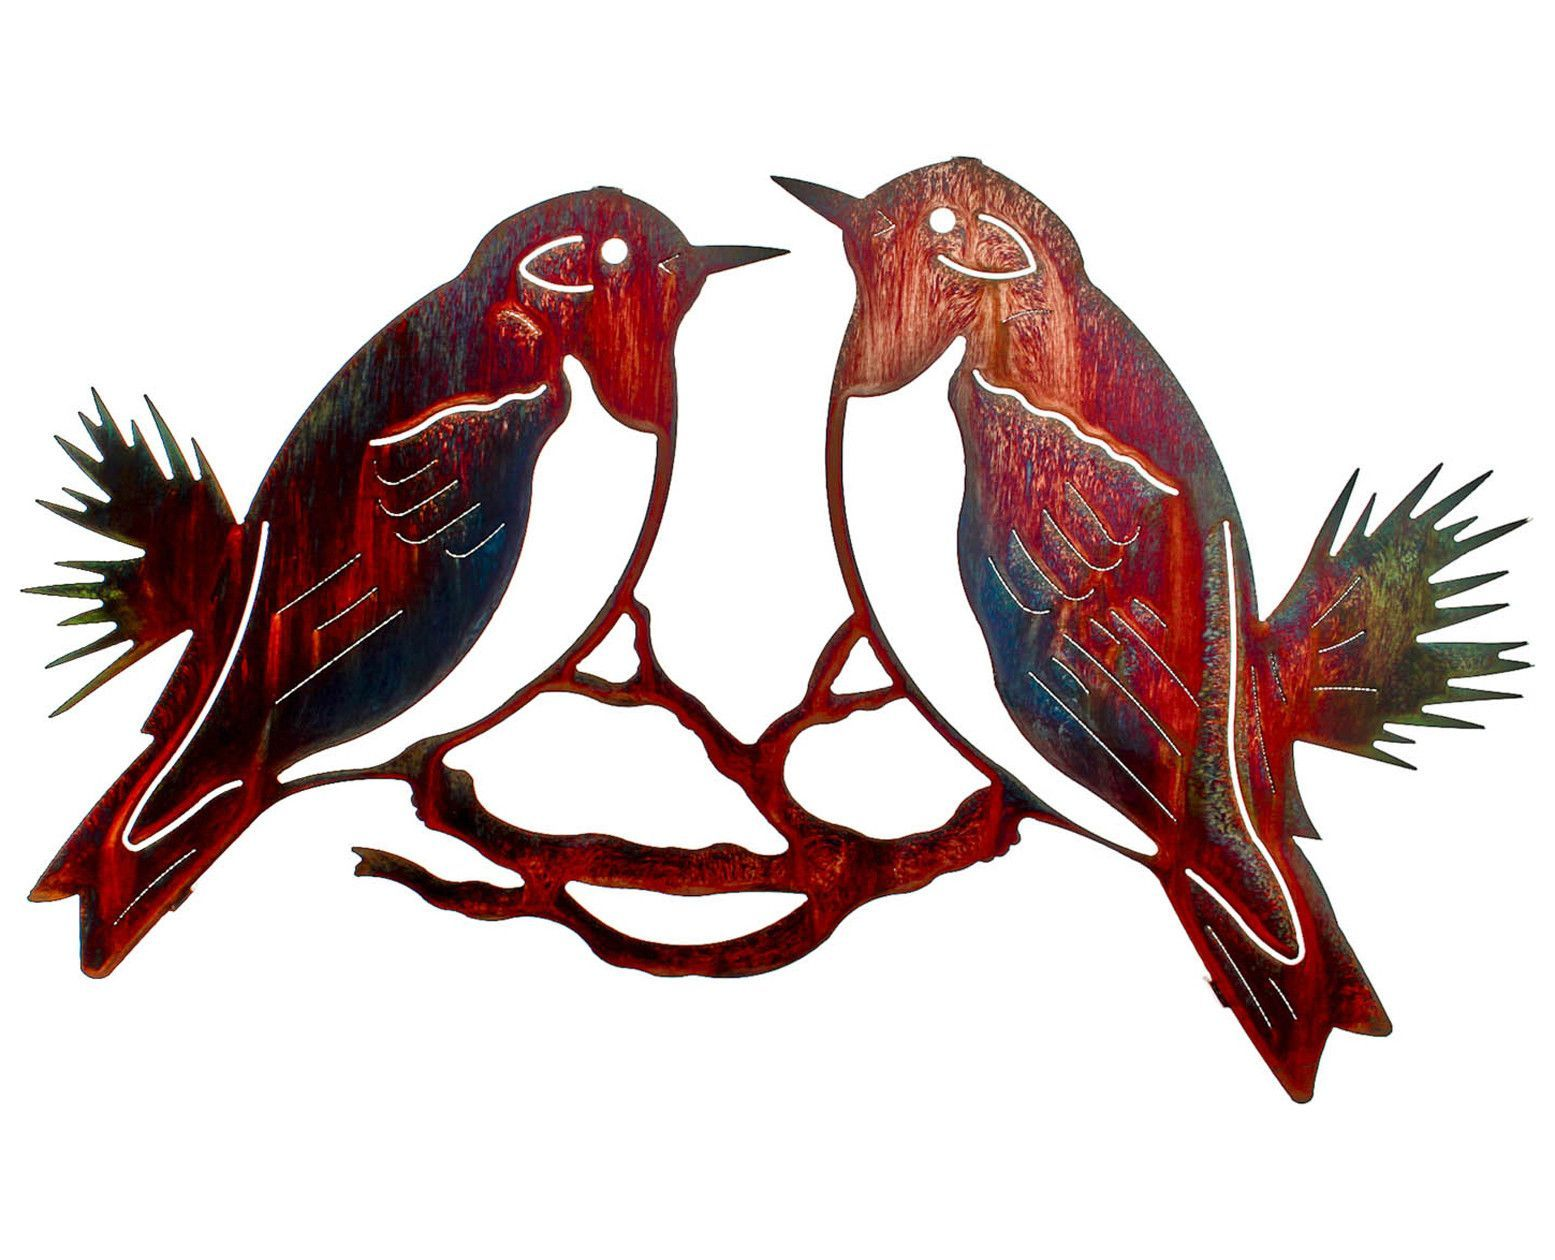 Pair of sparrows wall art wildlife pinterest walls pair of sparrows wall art thecheapjerseys Image collections